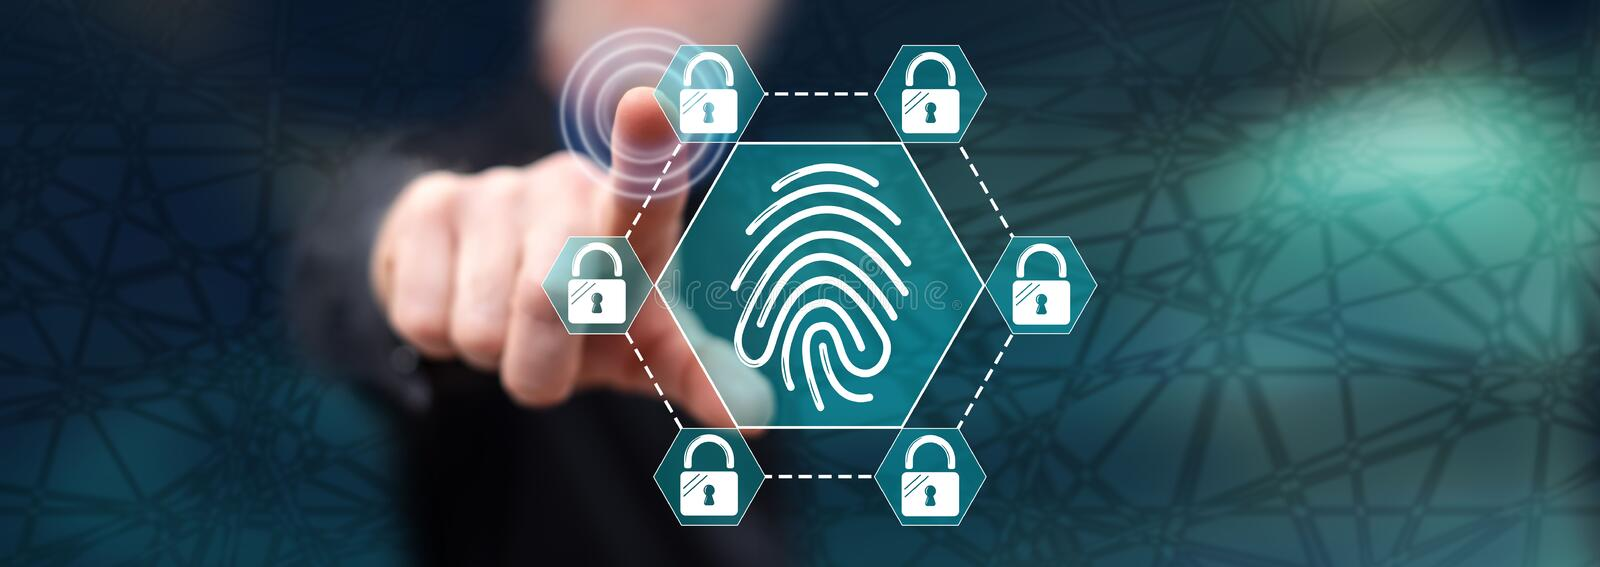 Man touching a fingerprint security system concept royalty free stock images